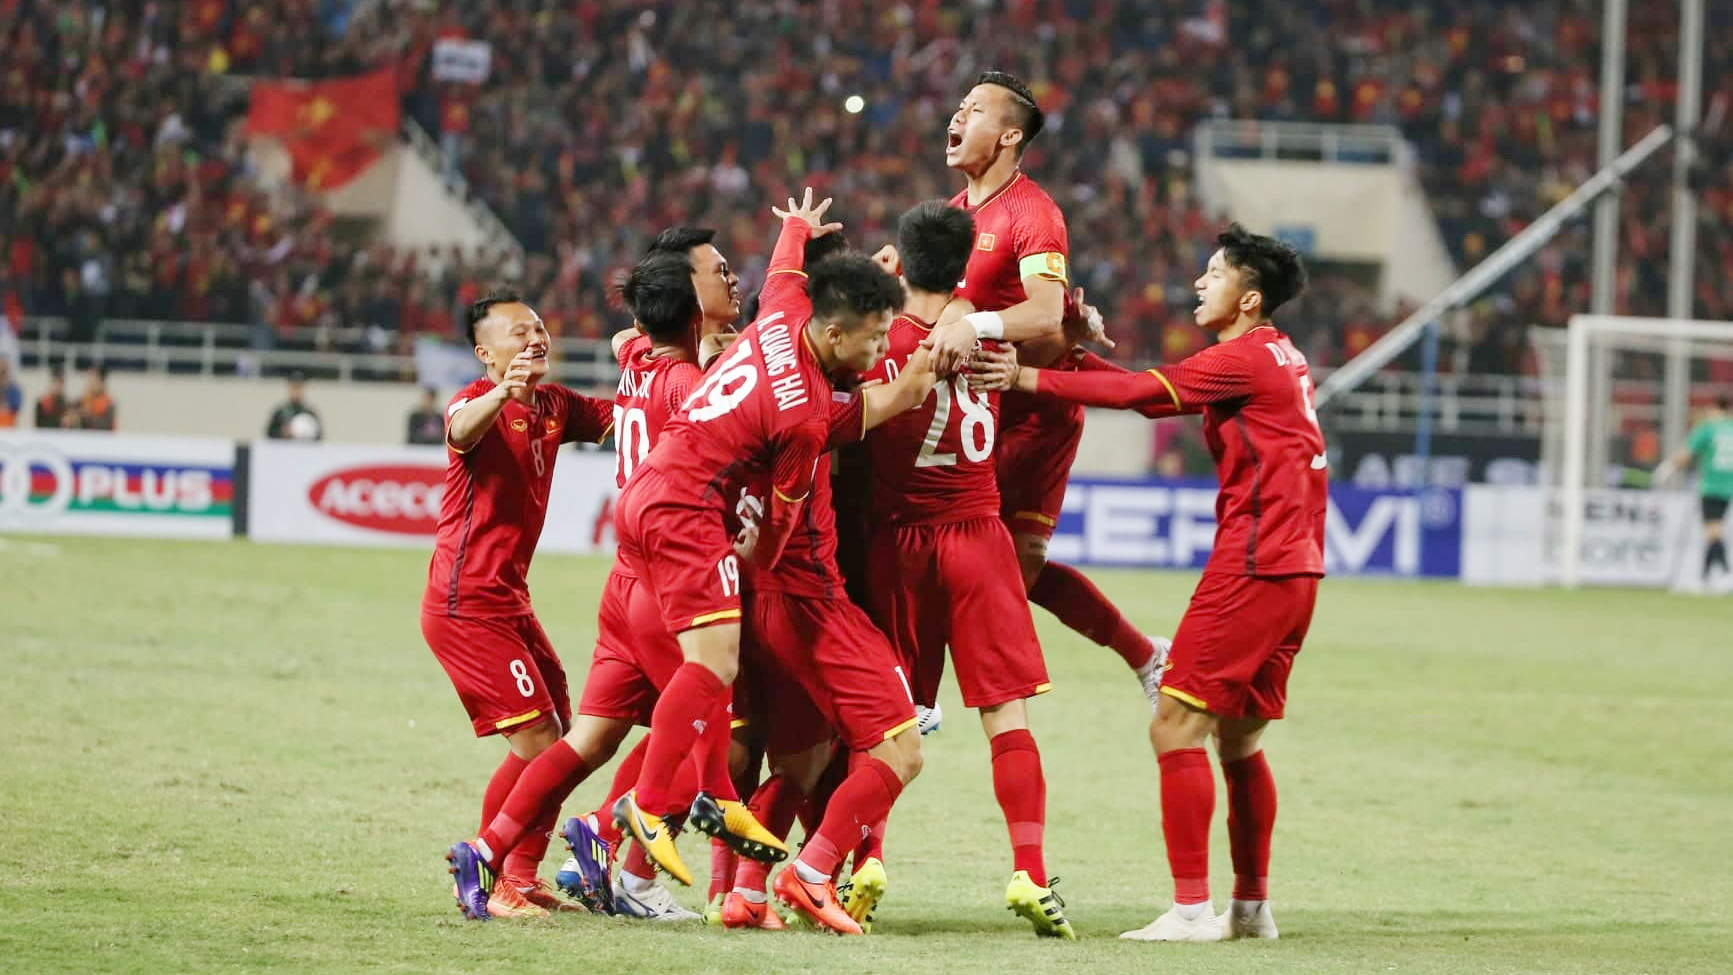 Defending champions Vietnam drawn in AFF Cup's Group B